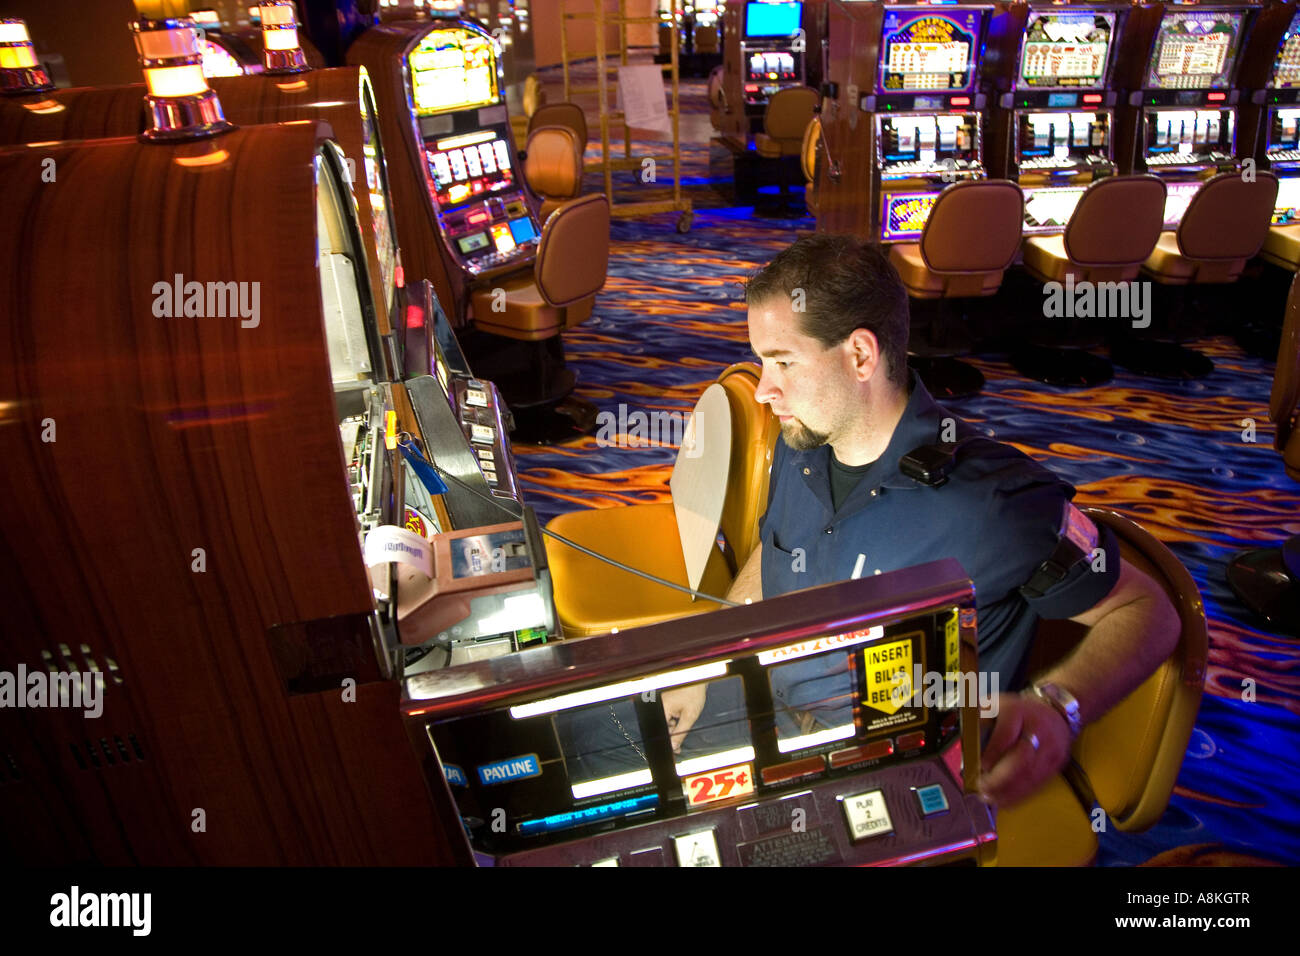 Casino gaming, slot slot technician technician miami casino